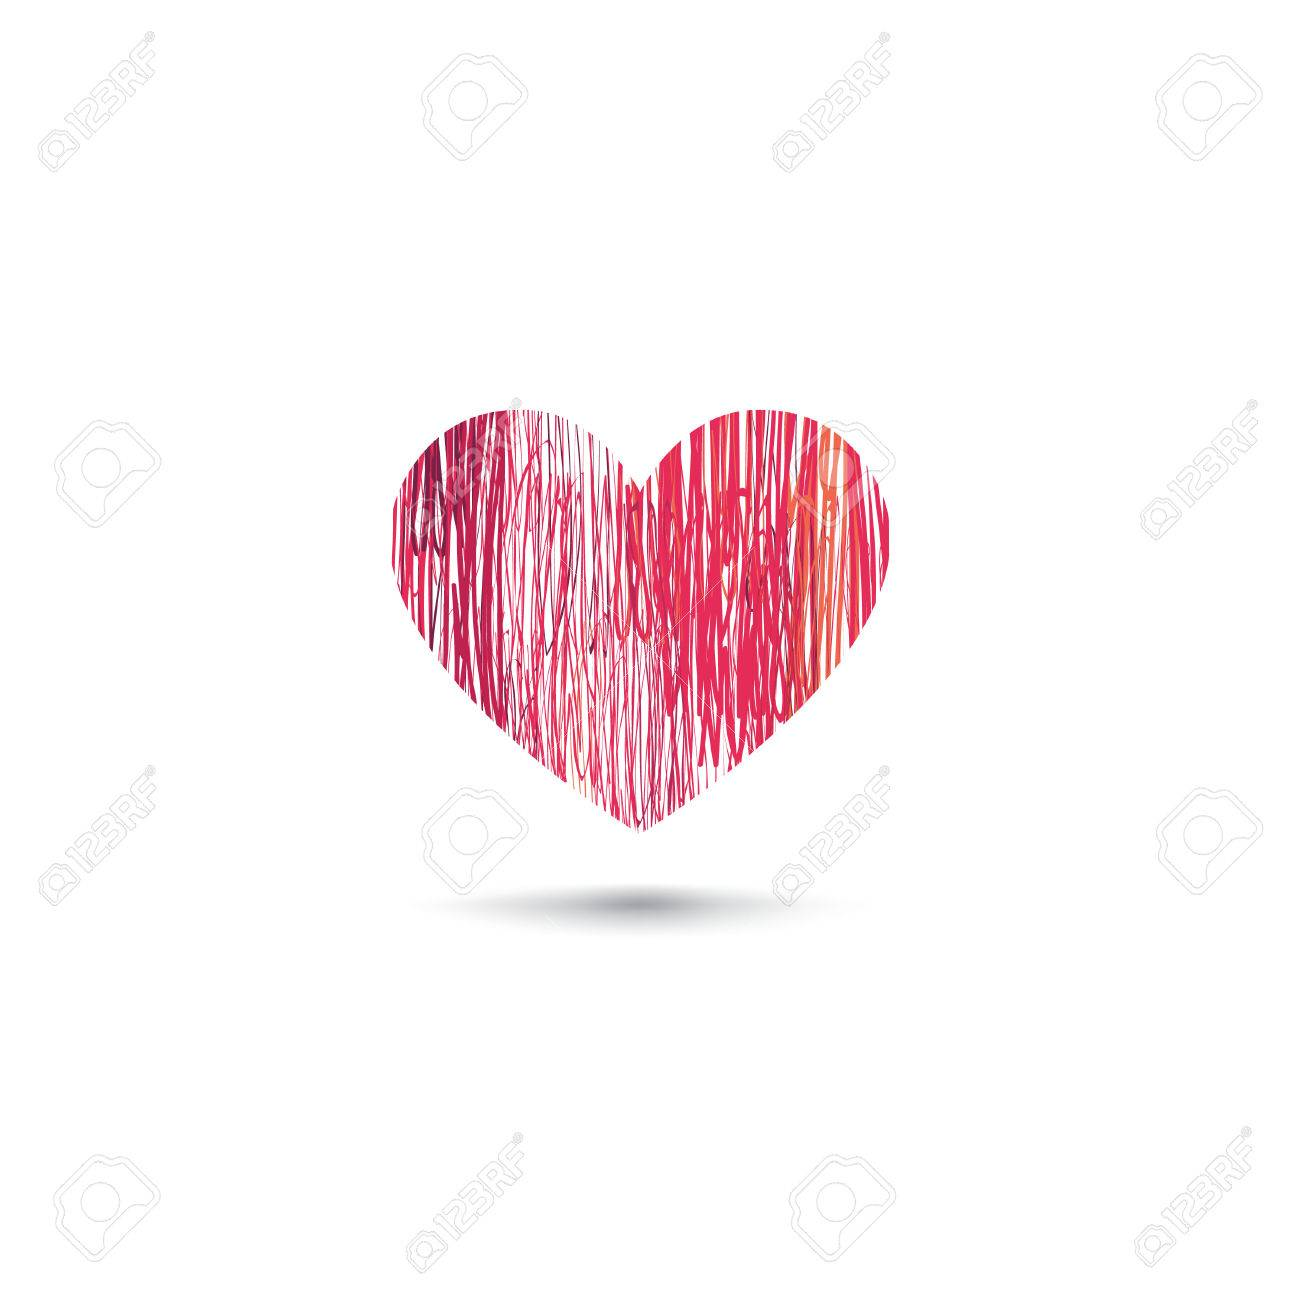 Love heart card pencil drawing sketch heart icon isolated over white background stock vector